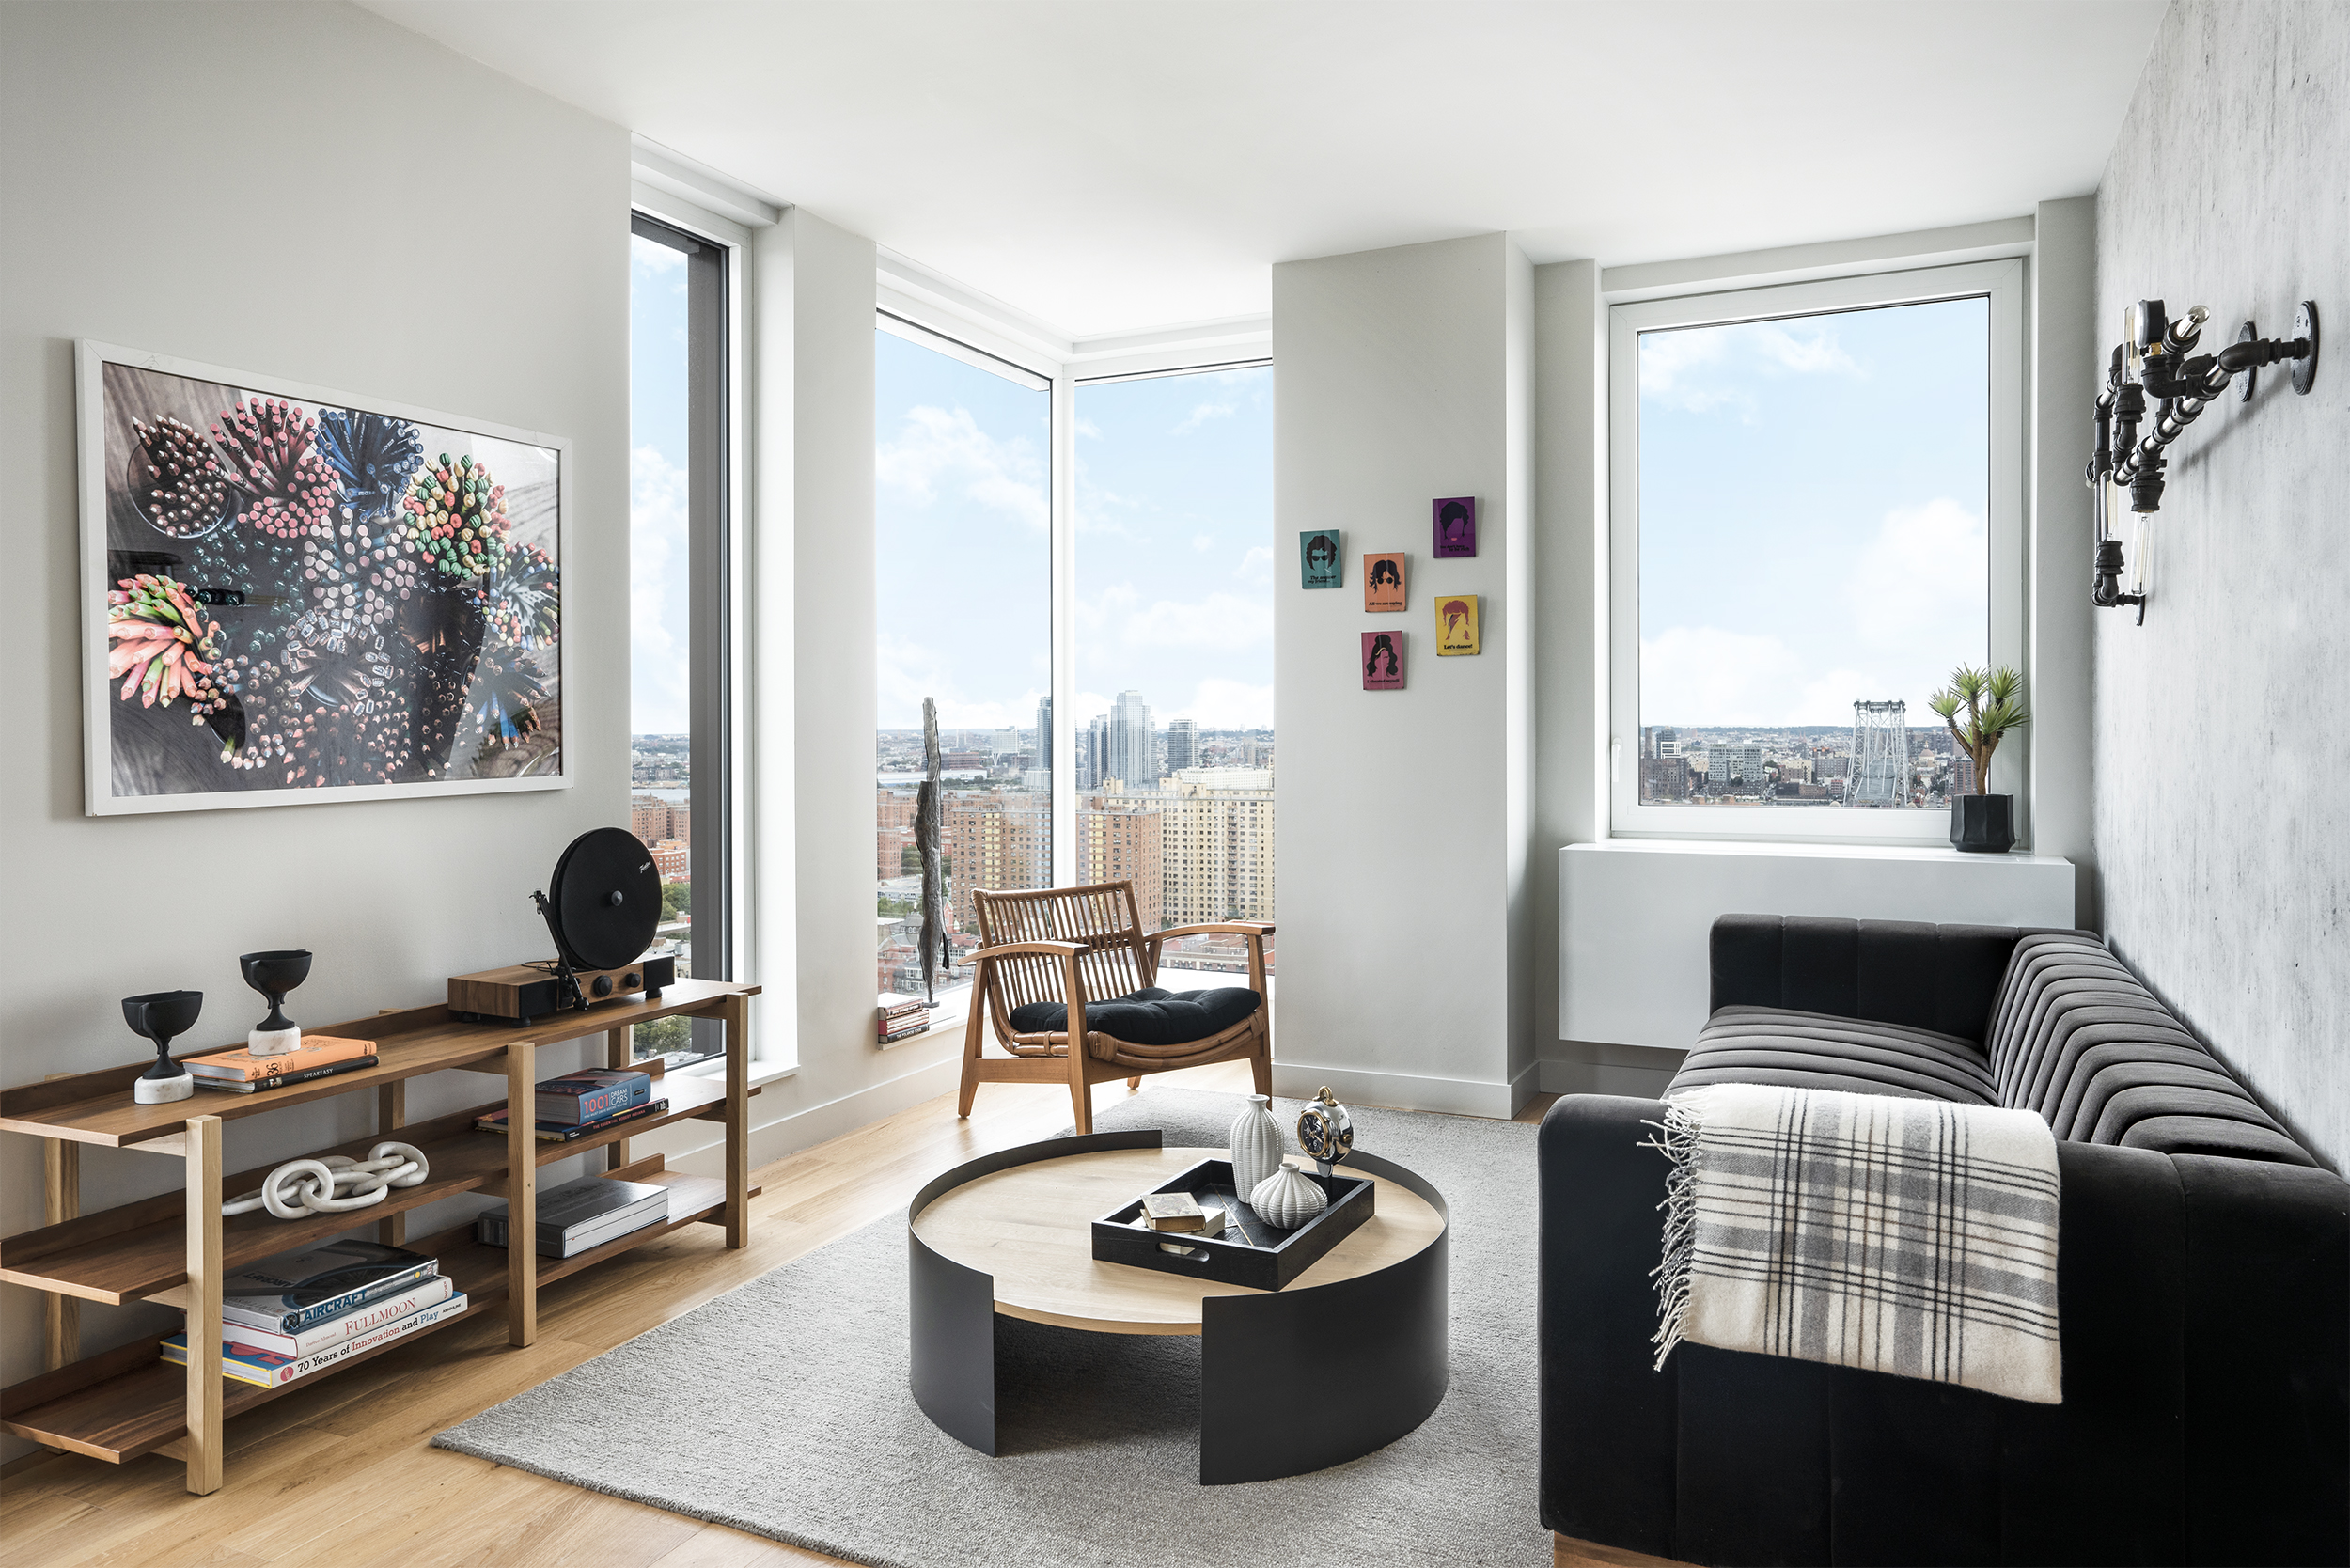 New looks inside Essex Crossing's tallest residential building